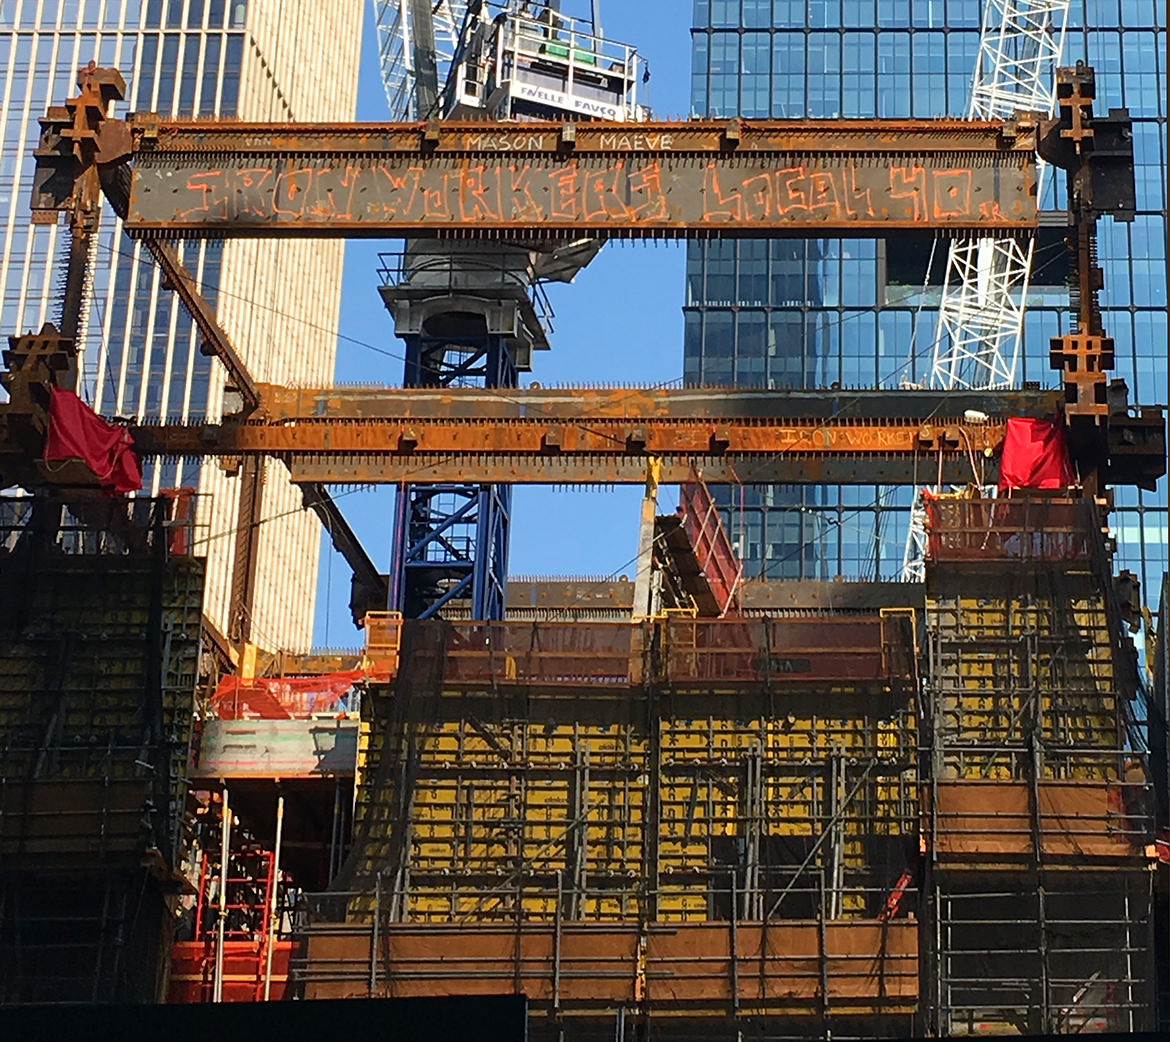 A construction site for a new skyscraper as the iron beams are fitted in place